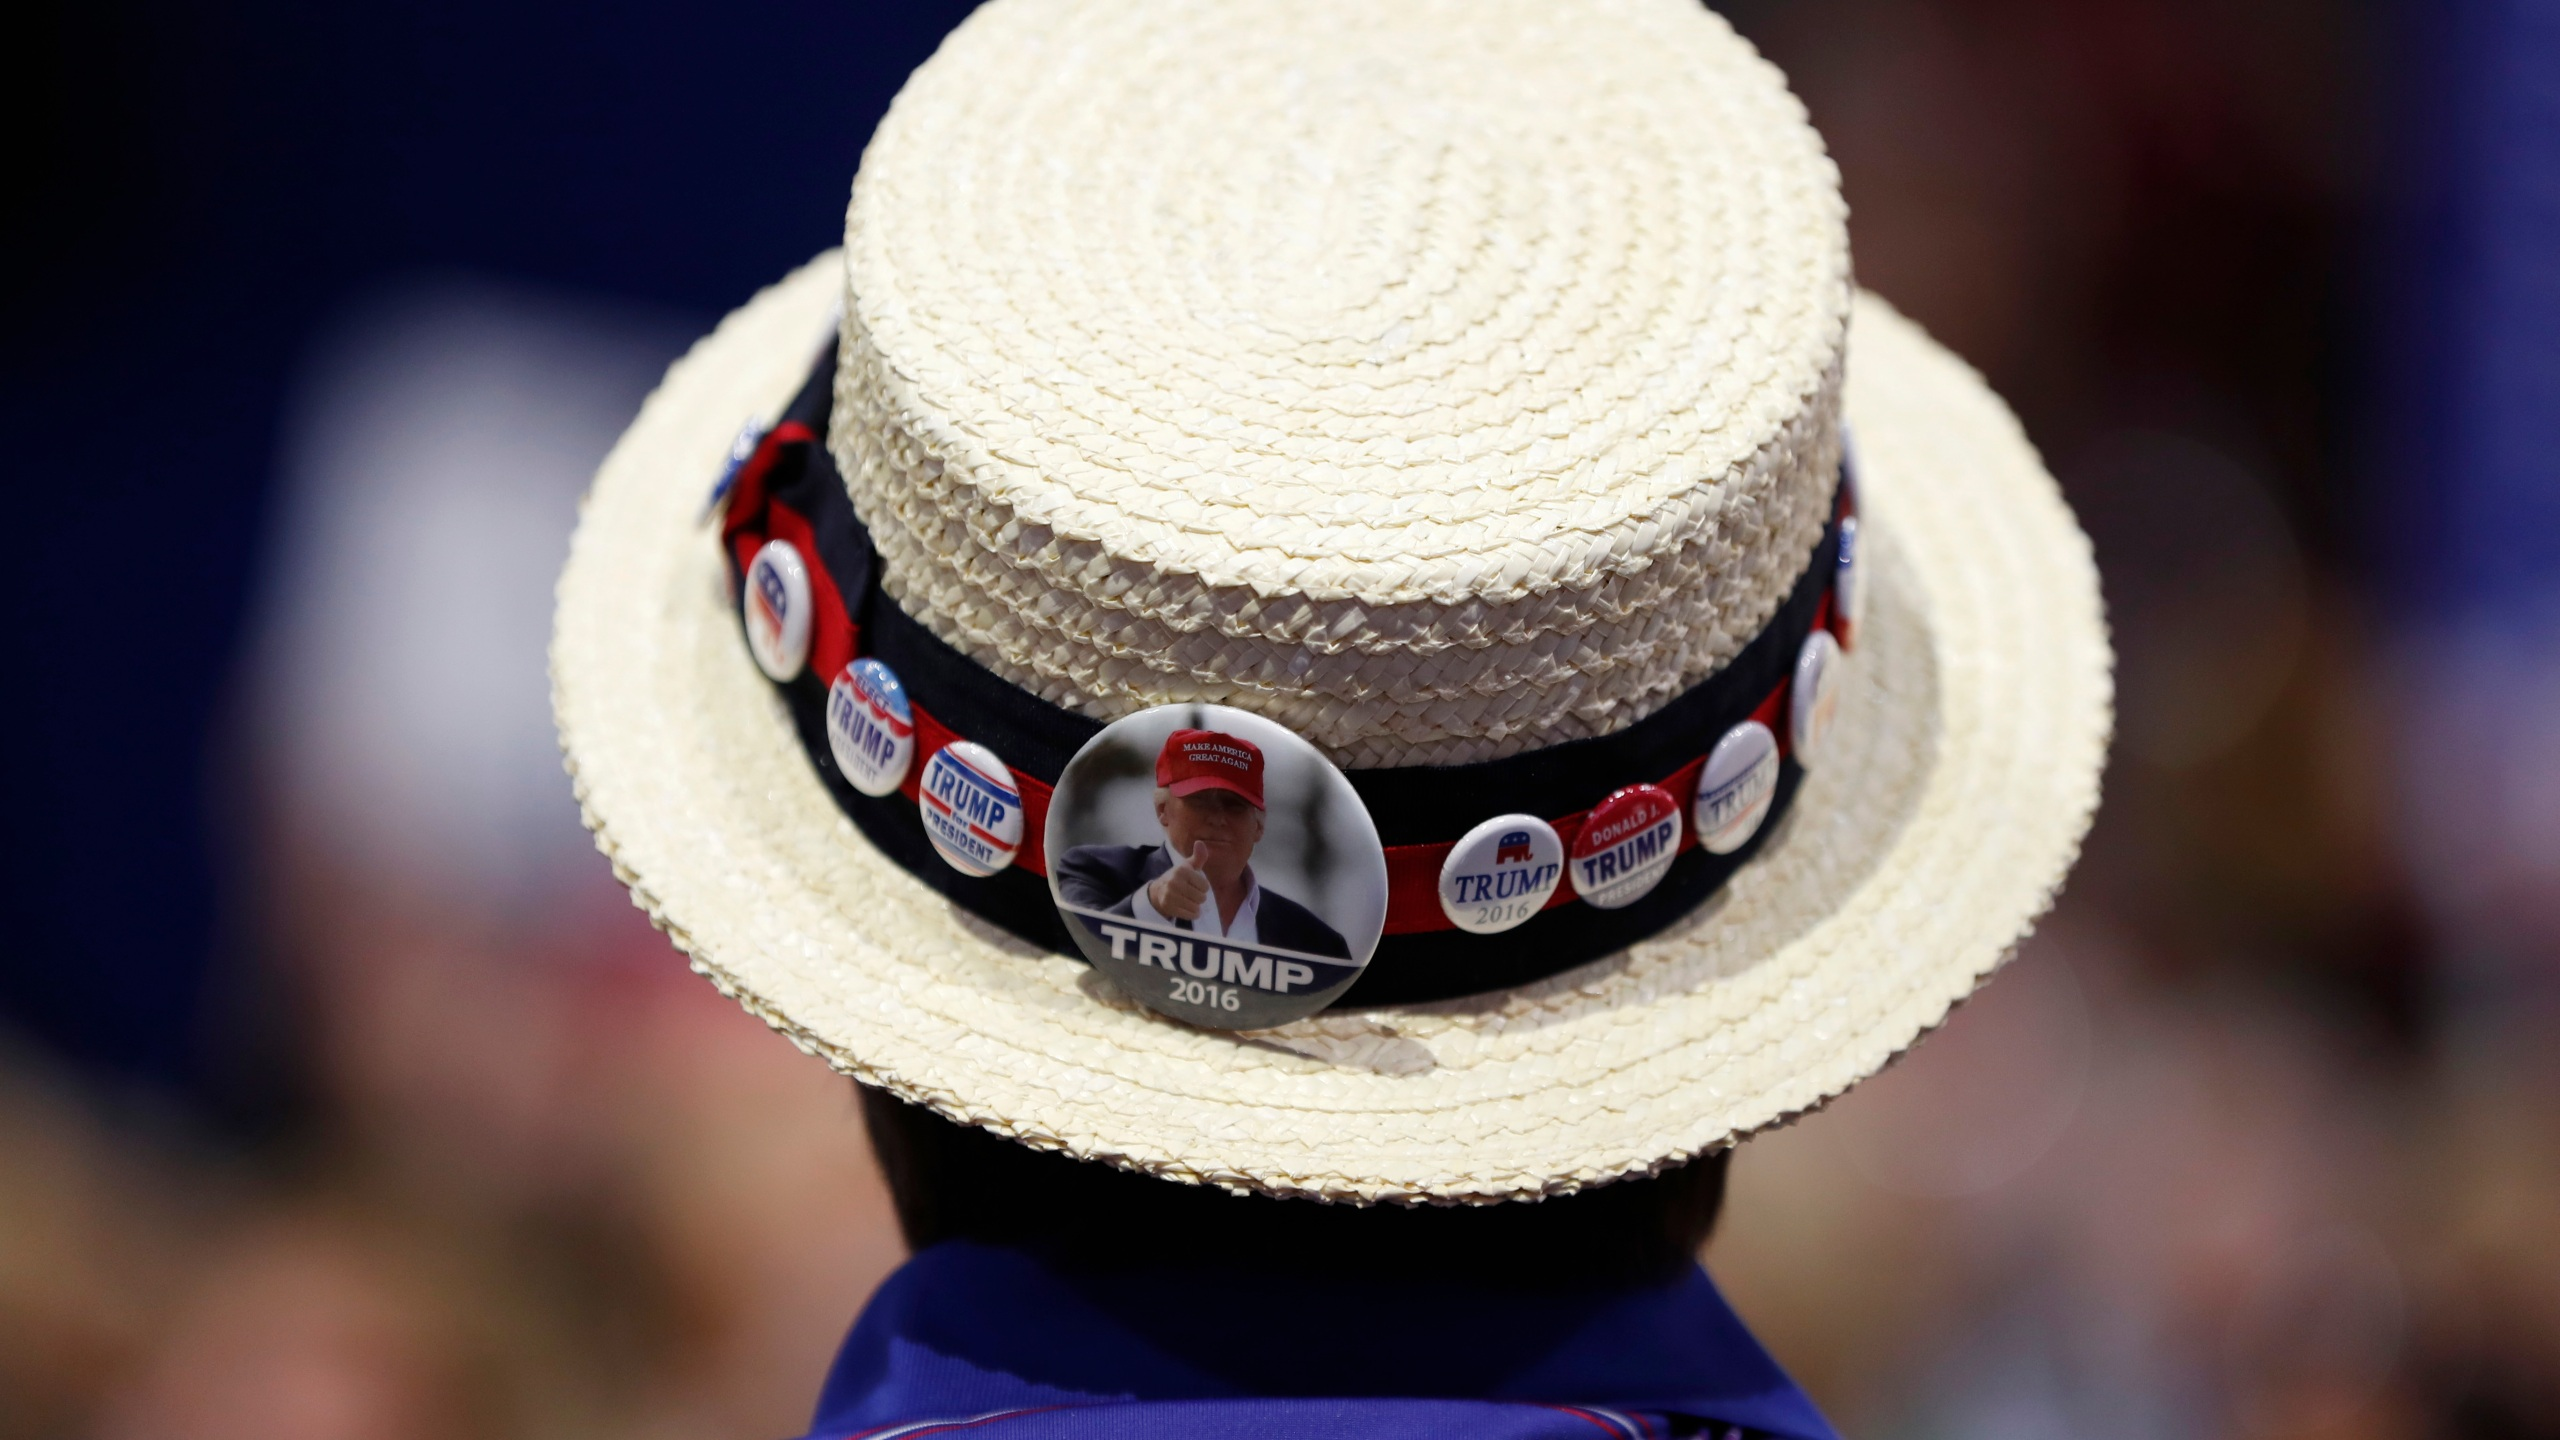 In this July 20, 2016 file photo, a delegate shows off support for Republican Presidential Candidate Donald Trump during the third day session of the Republican National Convention in Cleveland. (AP Photo/Carolyn Kaster)